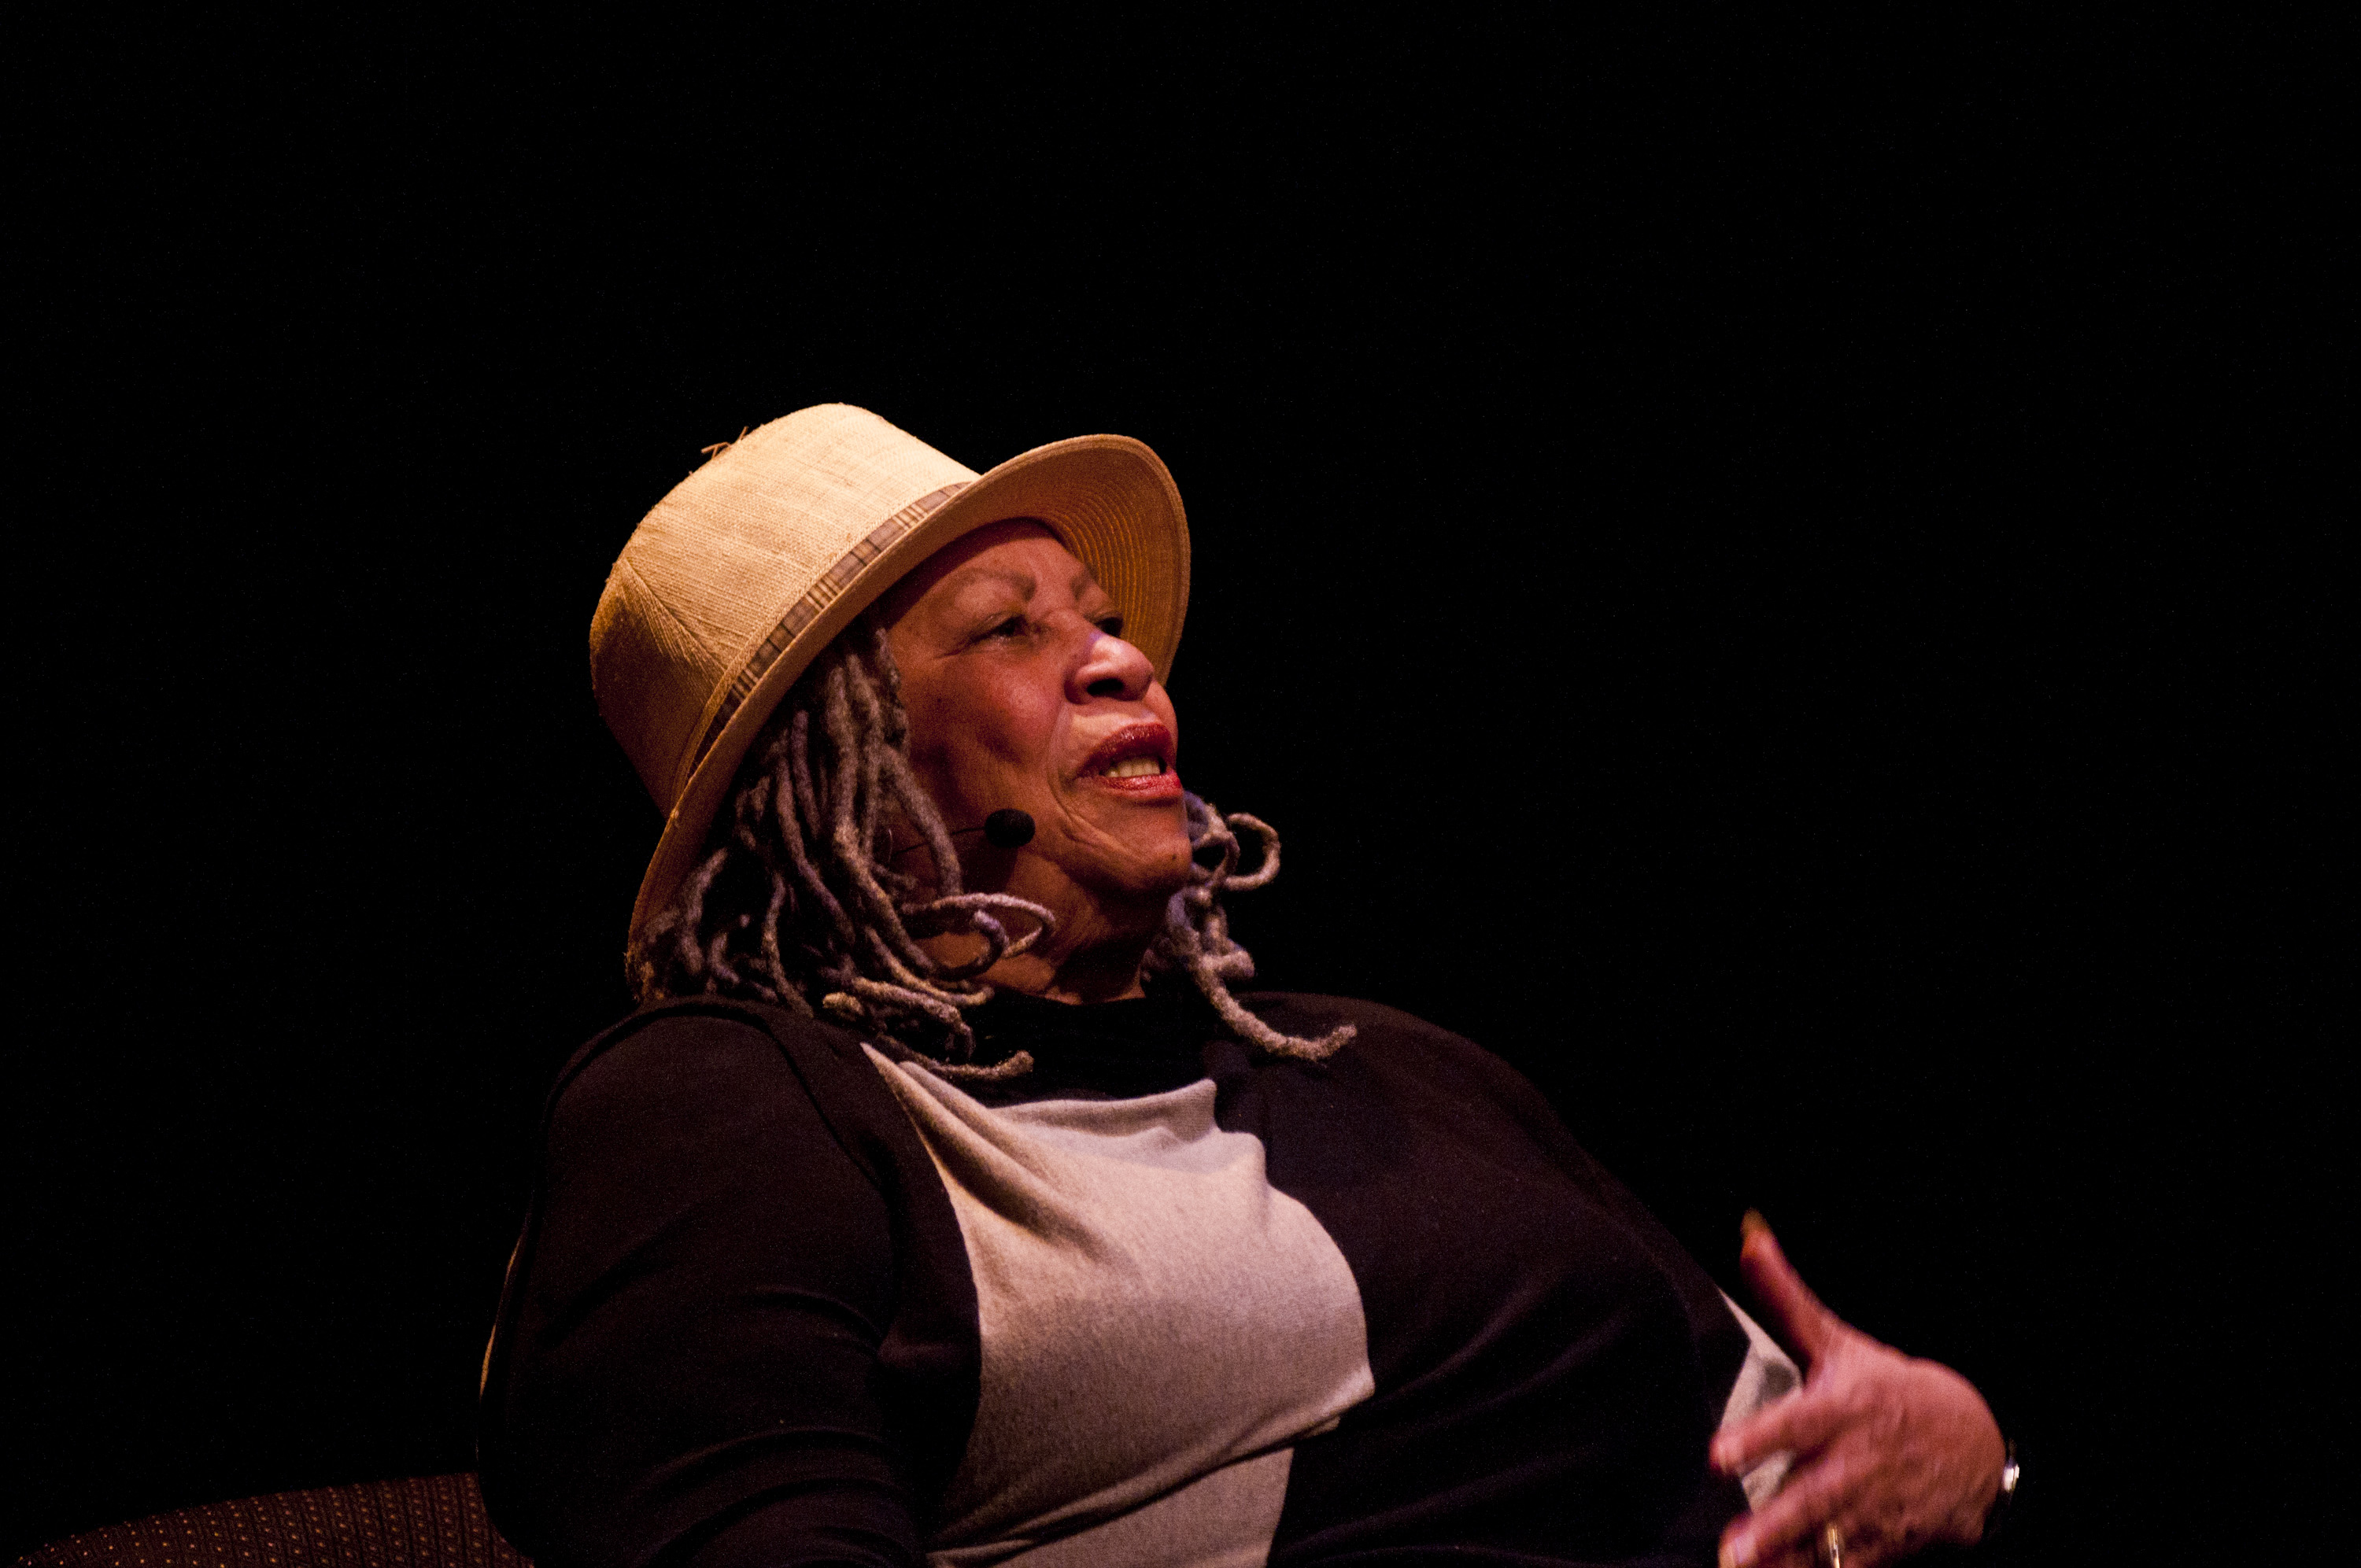 toni morrison writing style Toni morrison, original name chloe anthony wofford, (born february 18, 1931, lorain, ohio, us), american writer noted for her examination of black experience (particularly black female experience) within the black community she received the nobel prize for literature in 1993.